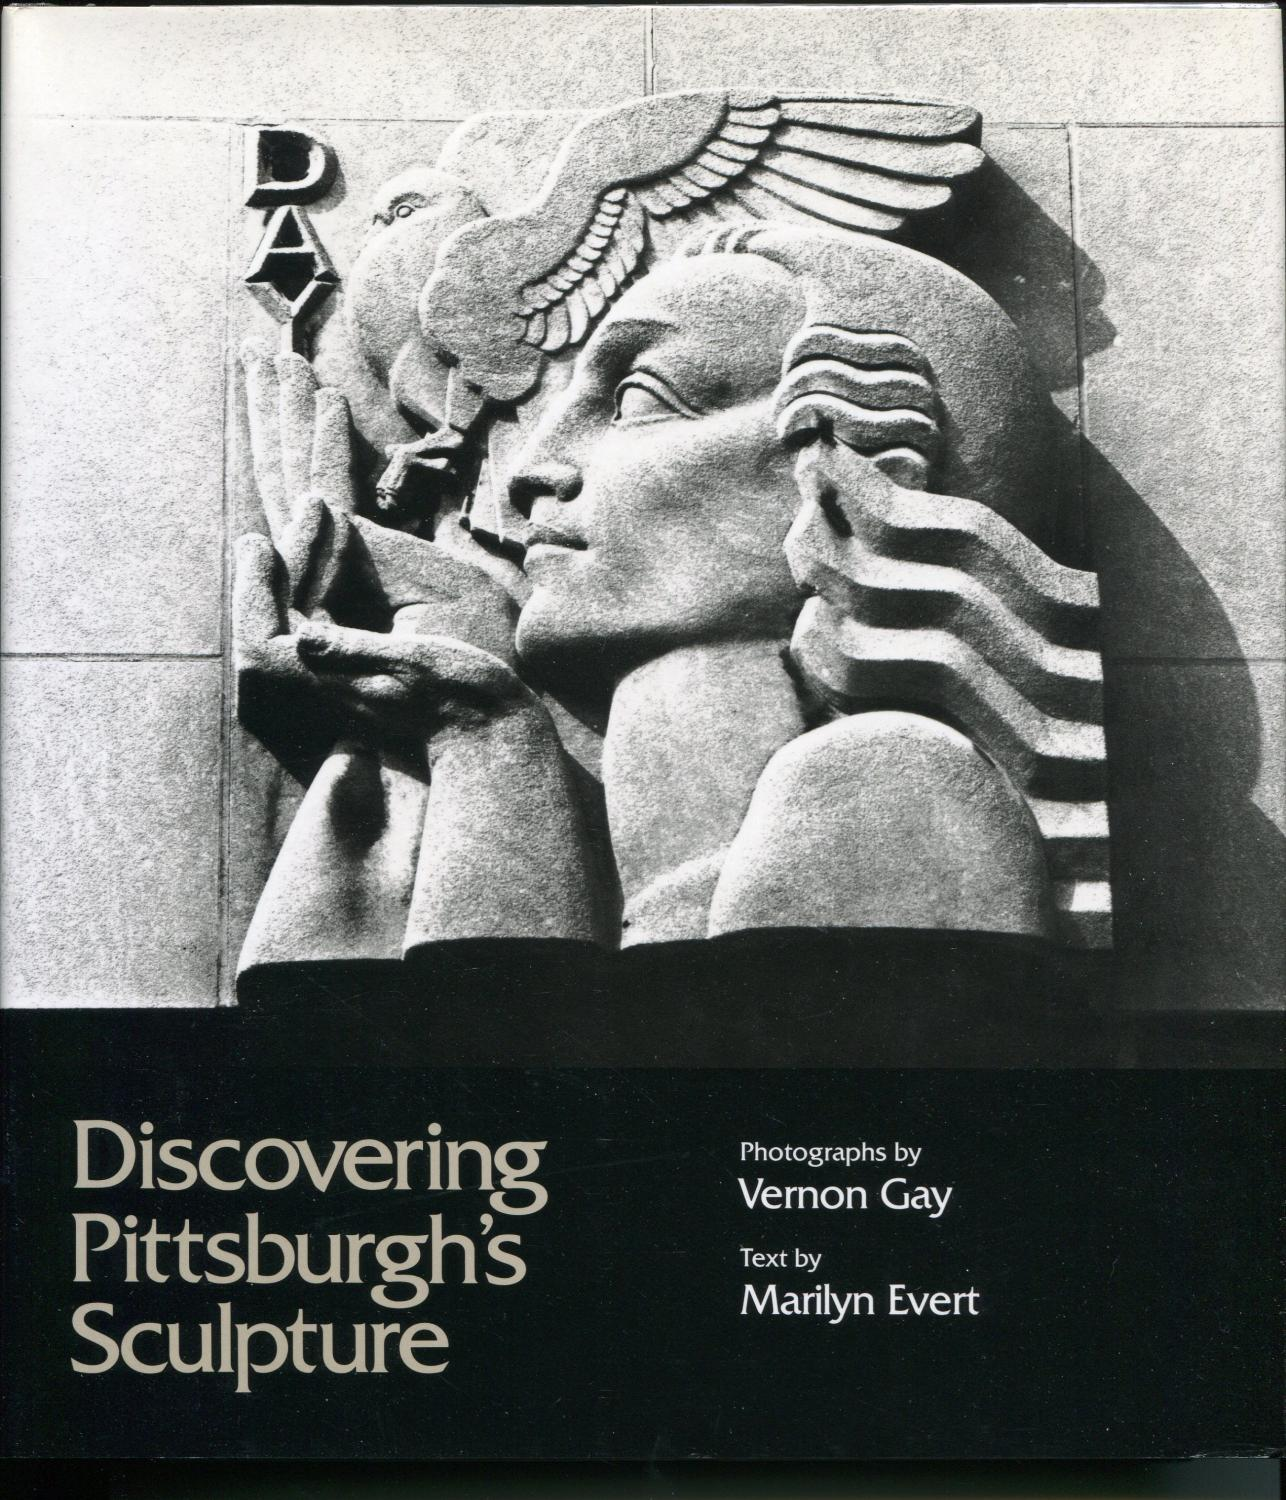 Discovering Pittsburgh Sculpture: Marilyn Evert